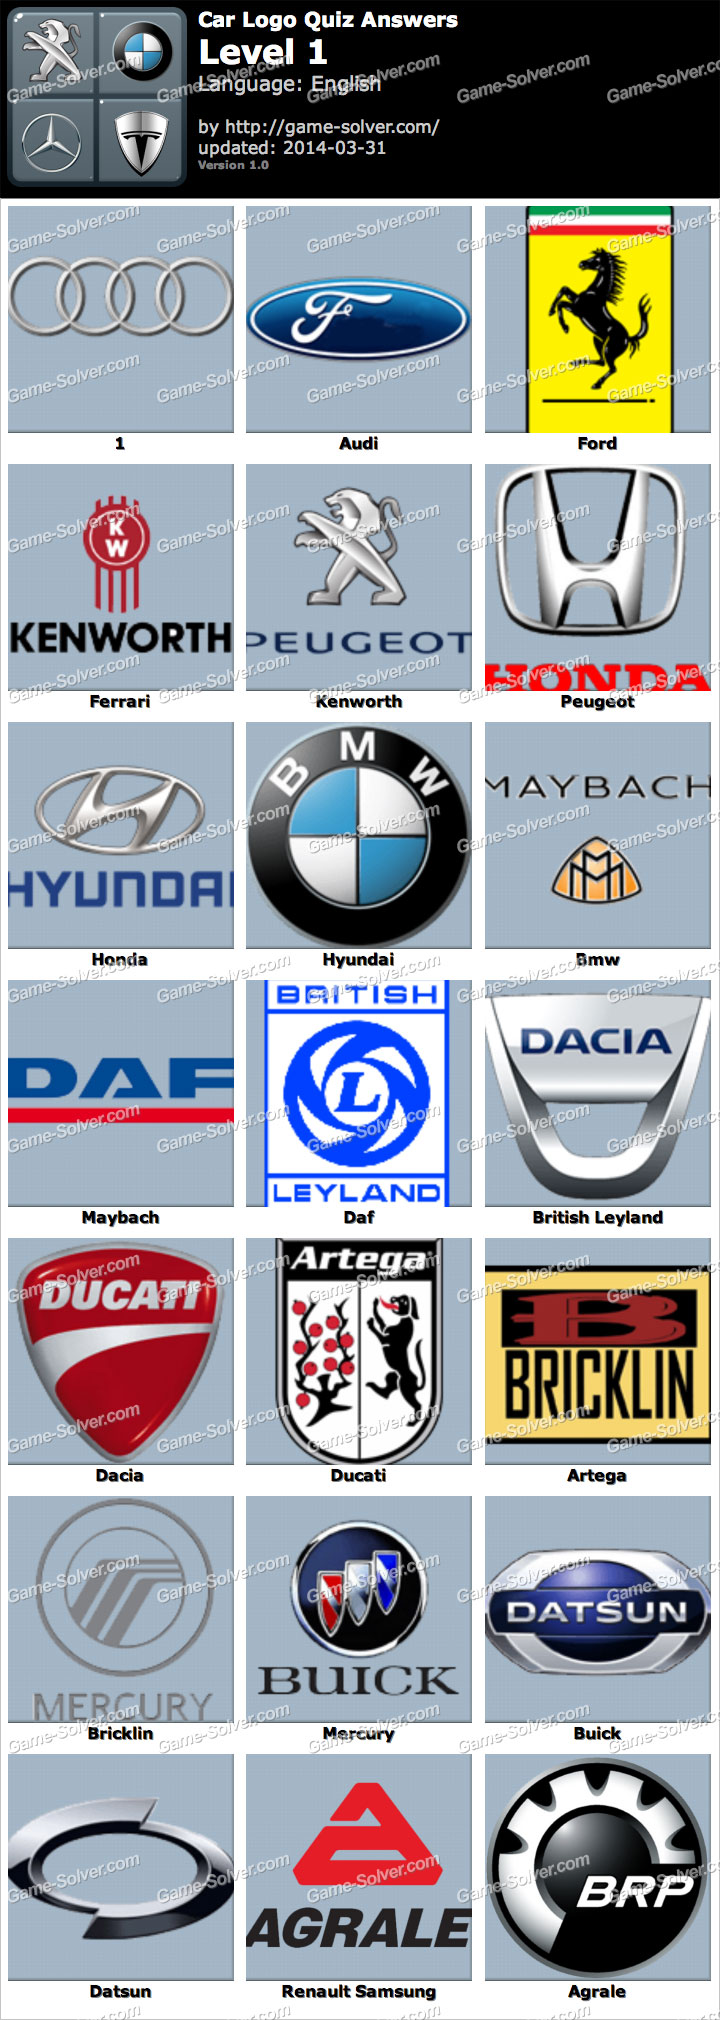 Car Logo Quiz Answers - Game Solver Cars Logos Quiz Answers